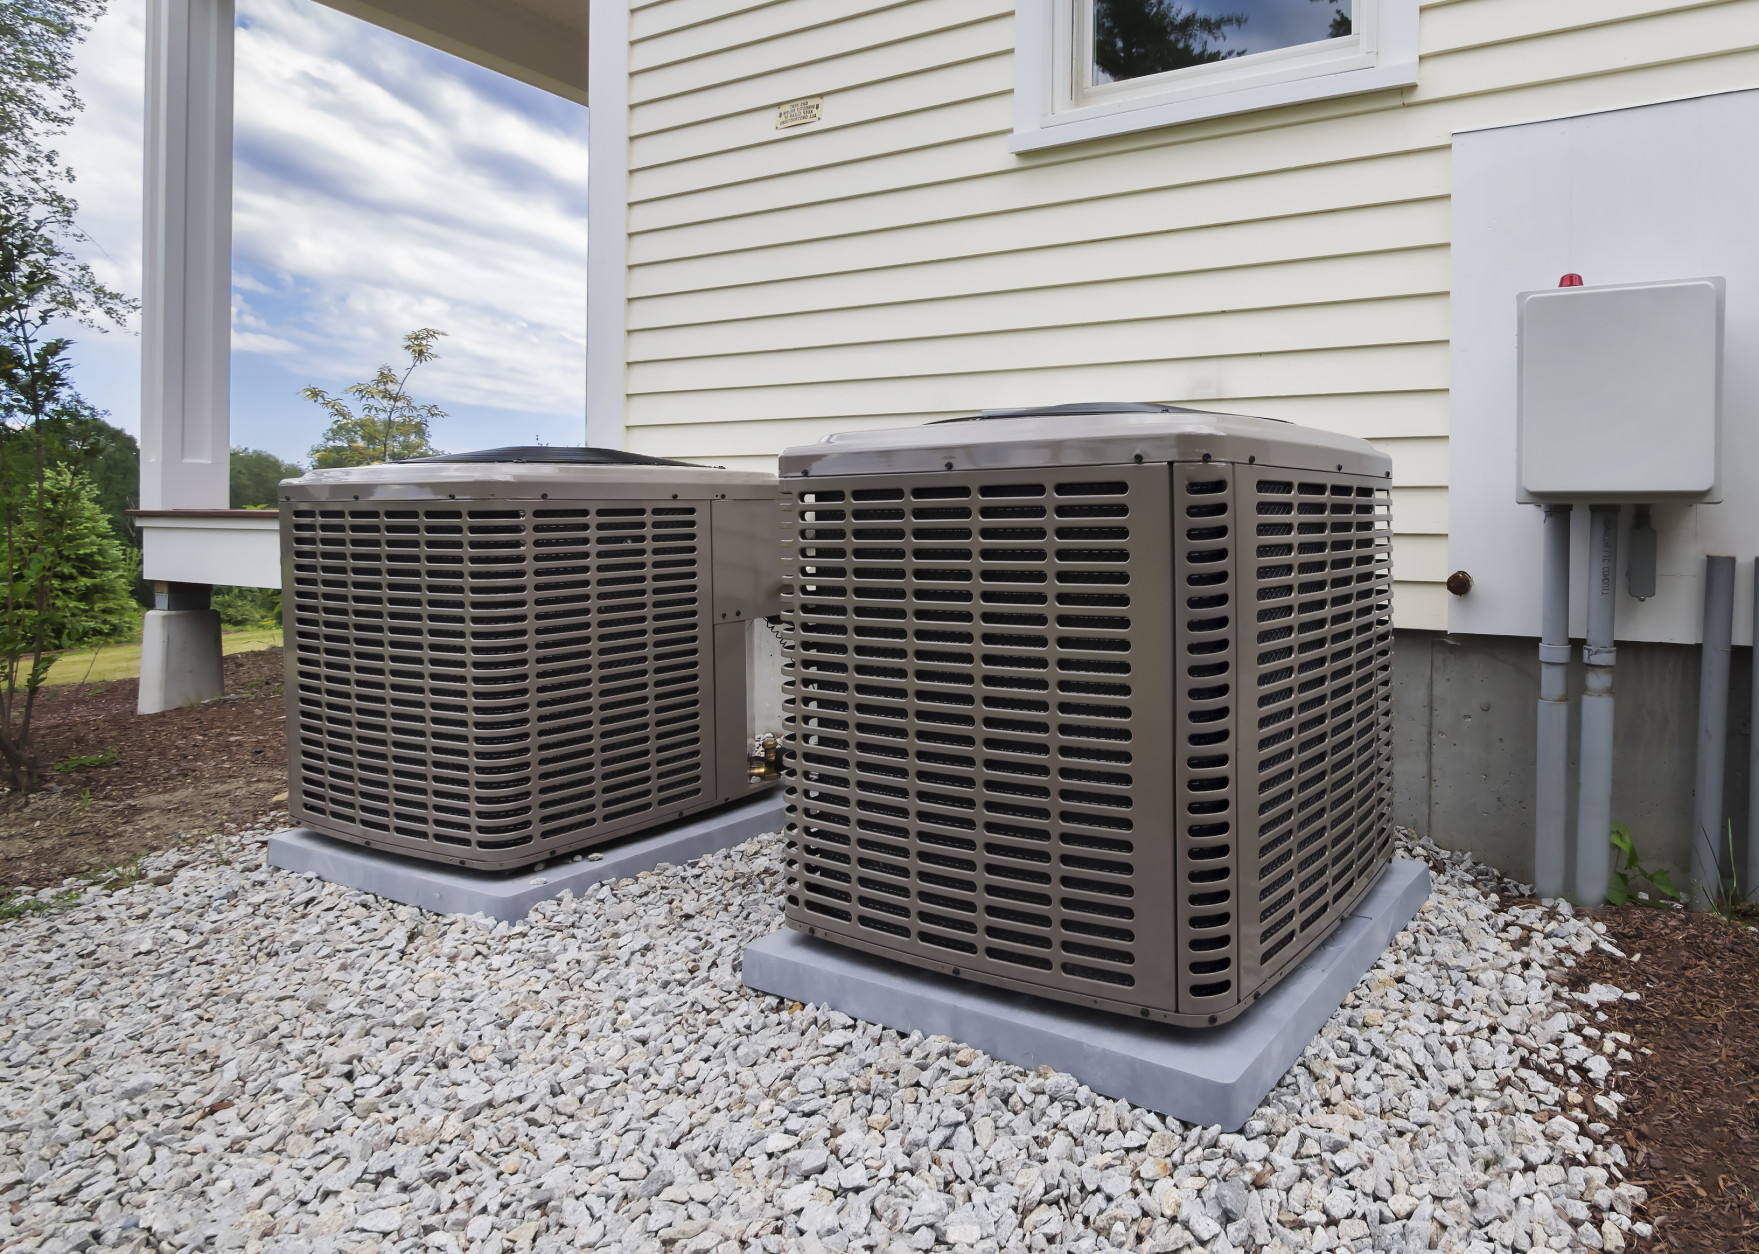 Keeping cool in the extreme heat doesn't have to cost a lot. (Getty Images)